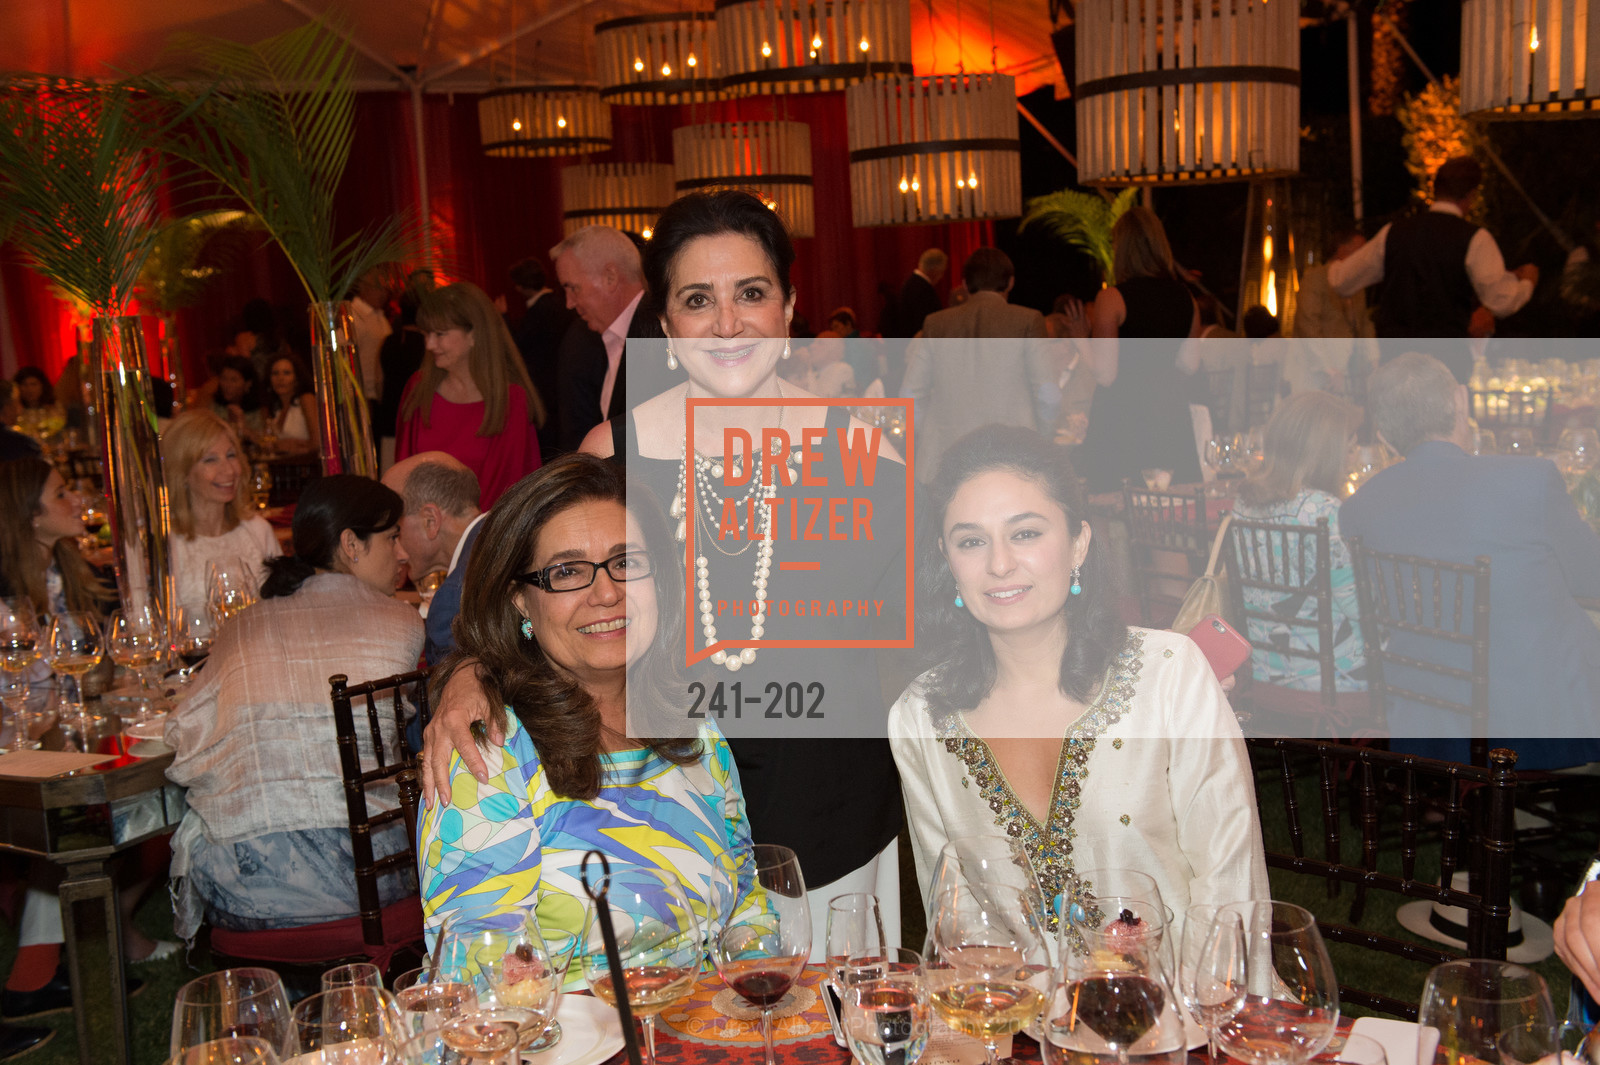 Susie, Lily Samii, Sonya Sani, Festival del Sole Patron Dinner at Darioush Winery, Darioush Winery. 4240 Silverado Trail, July 24th, 2015,Drew Altizer, Drew Altizer Photography, full-service agency, private events, San Francisco photographer, photographer california